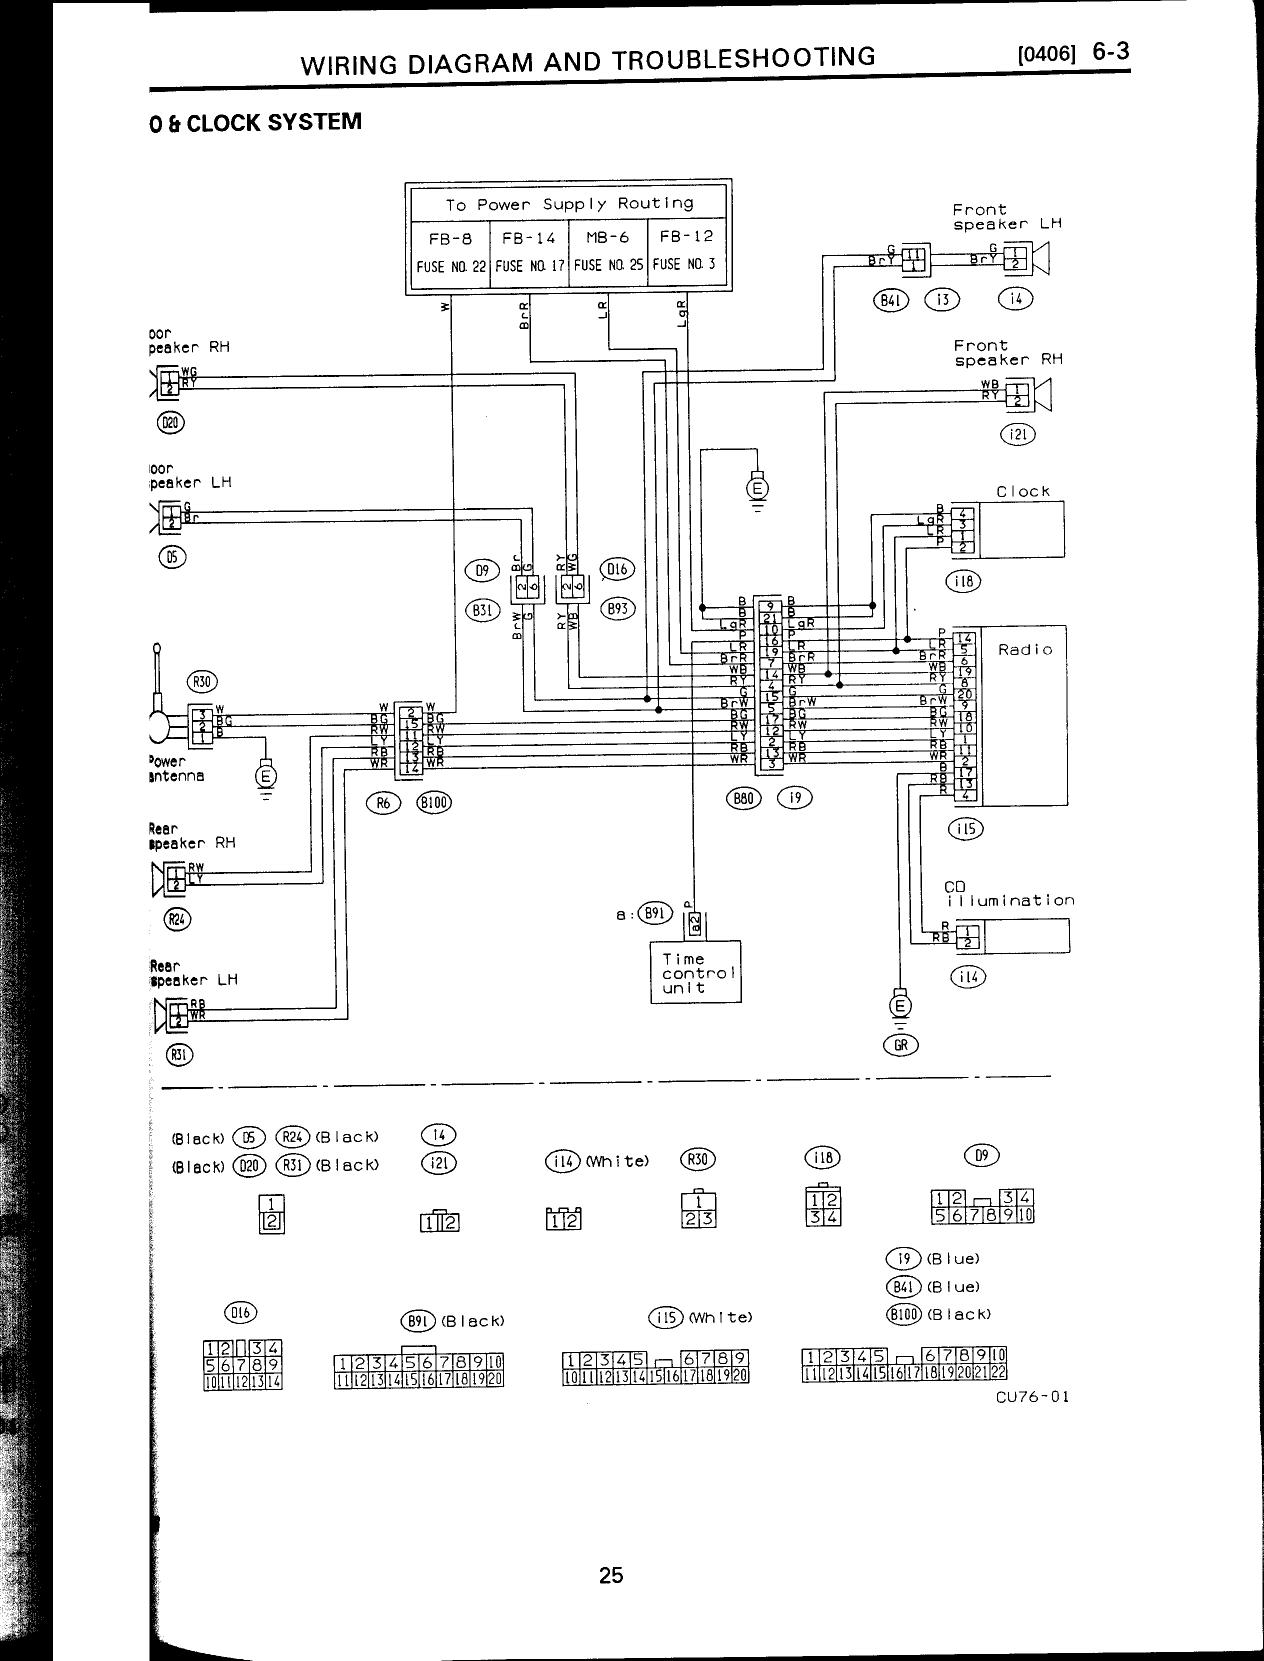 1992 Subaru Legacy Heater Wiring Schematic | stale-research wiring diagram  library | stale-research.kivitour.itstale-research.kivitour.it